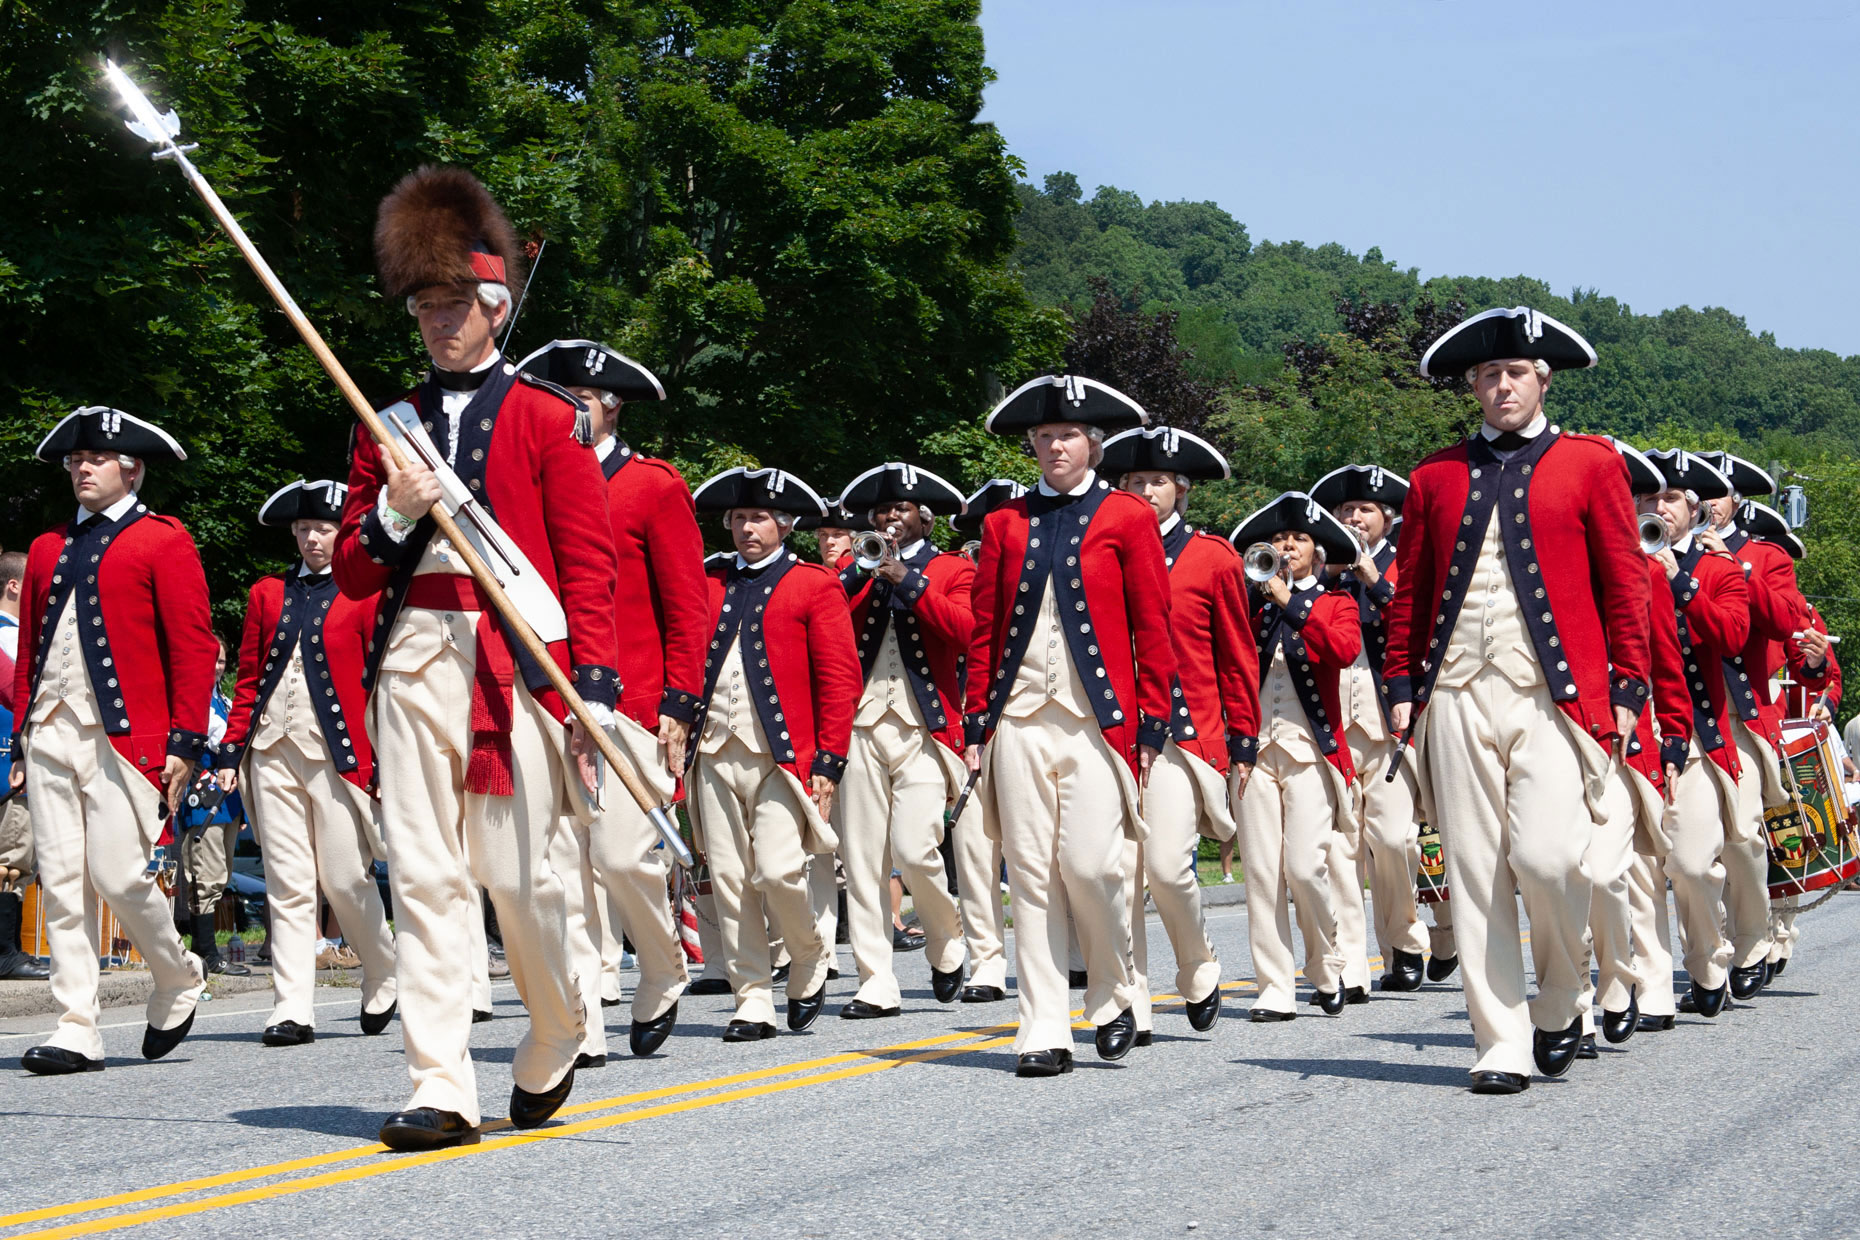 Photographer-of-Fife-and-Drum-Corps-Deep-River-Ancient-Muster-Caryn-B-Davis